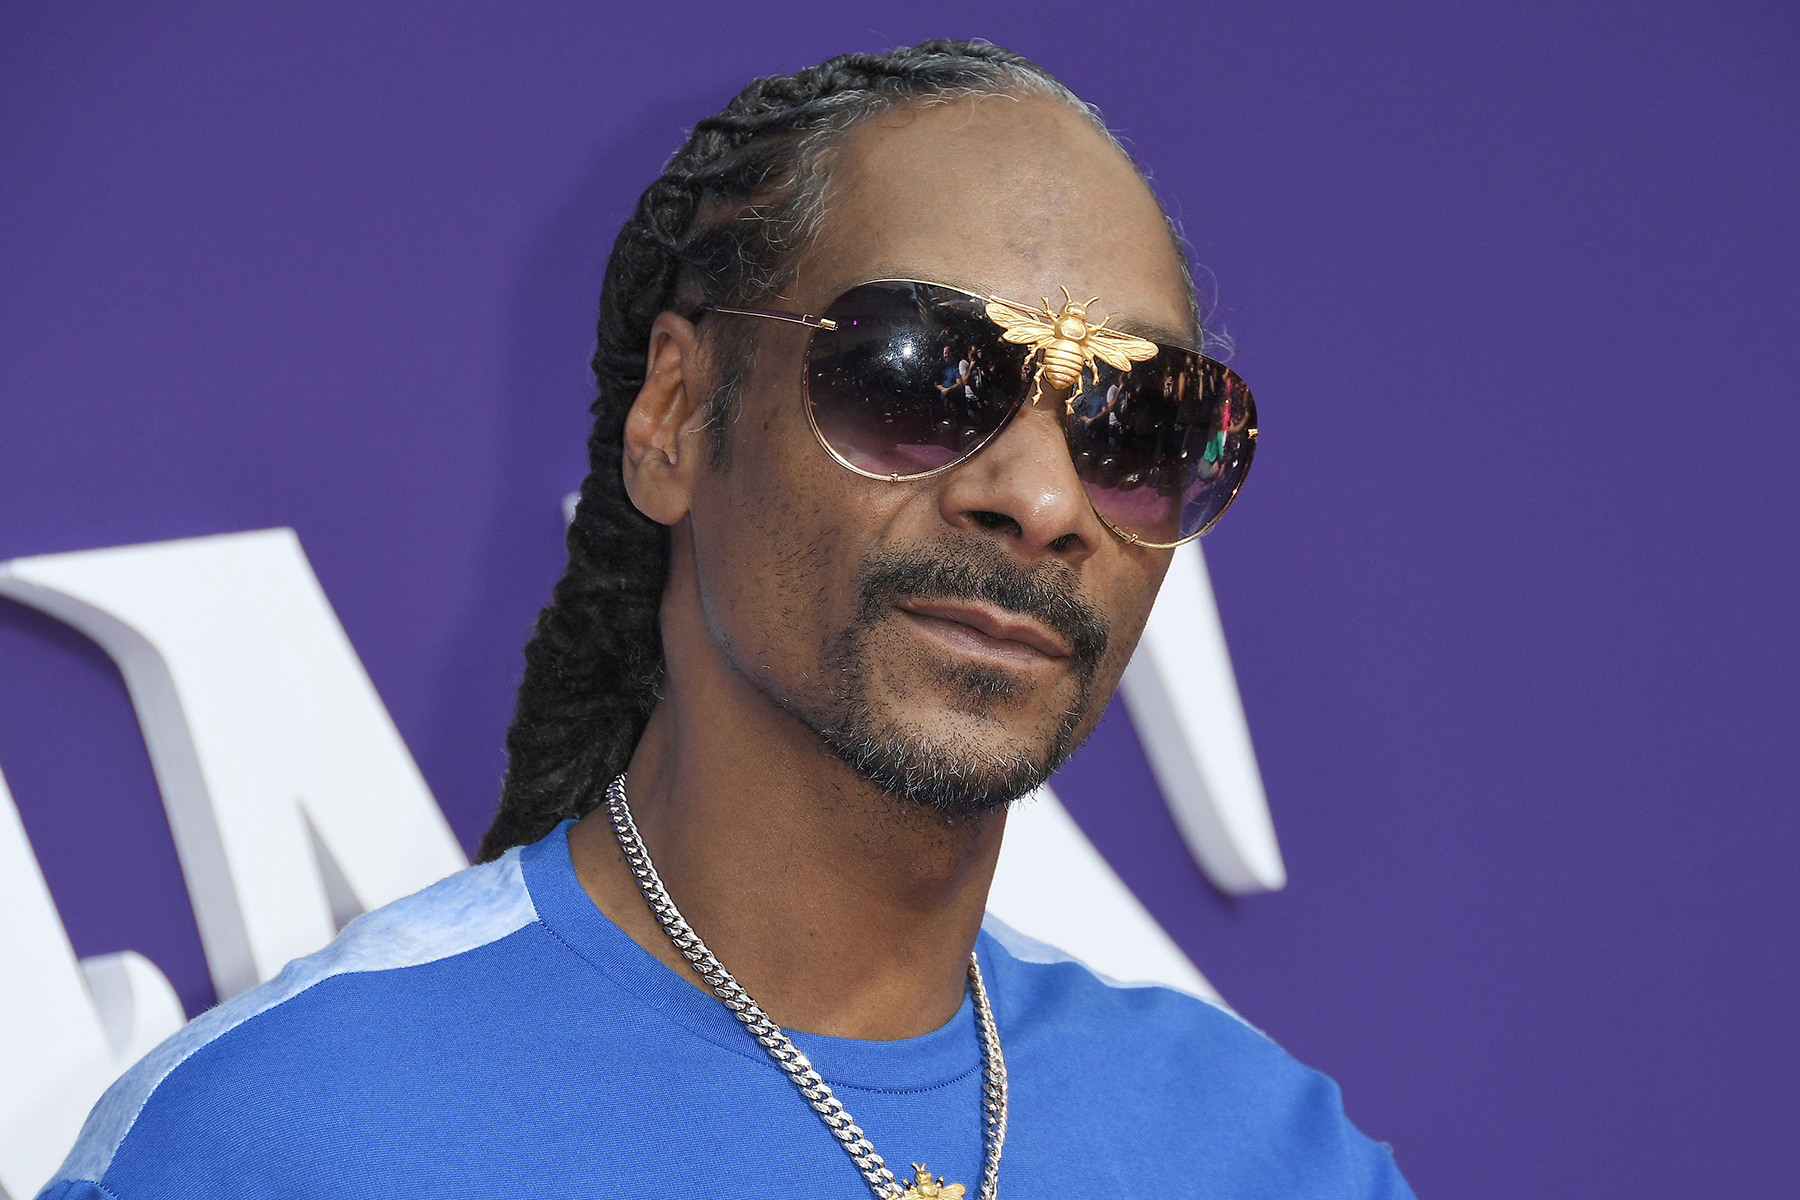 Snoop Dogg Thanks Trump for Pardoning Death Row Records Co-Founder Michael 'Harry O' Harris - Rolling Stone